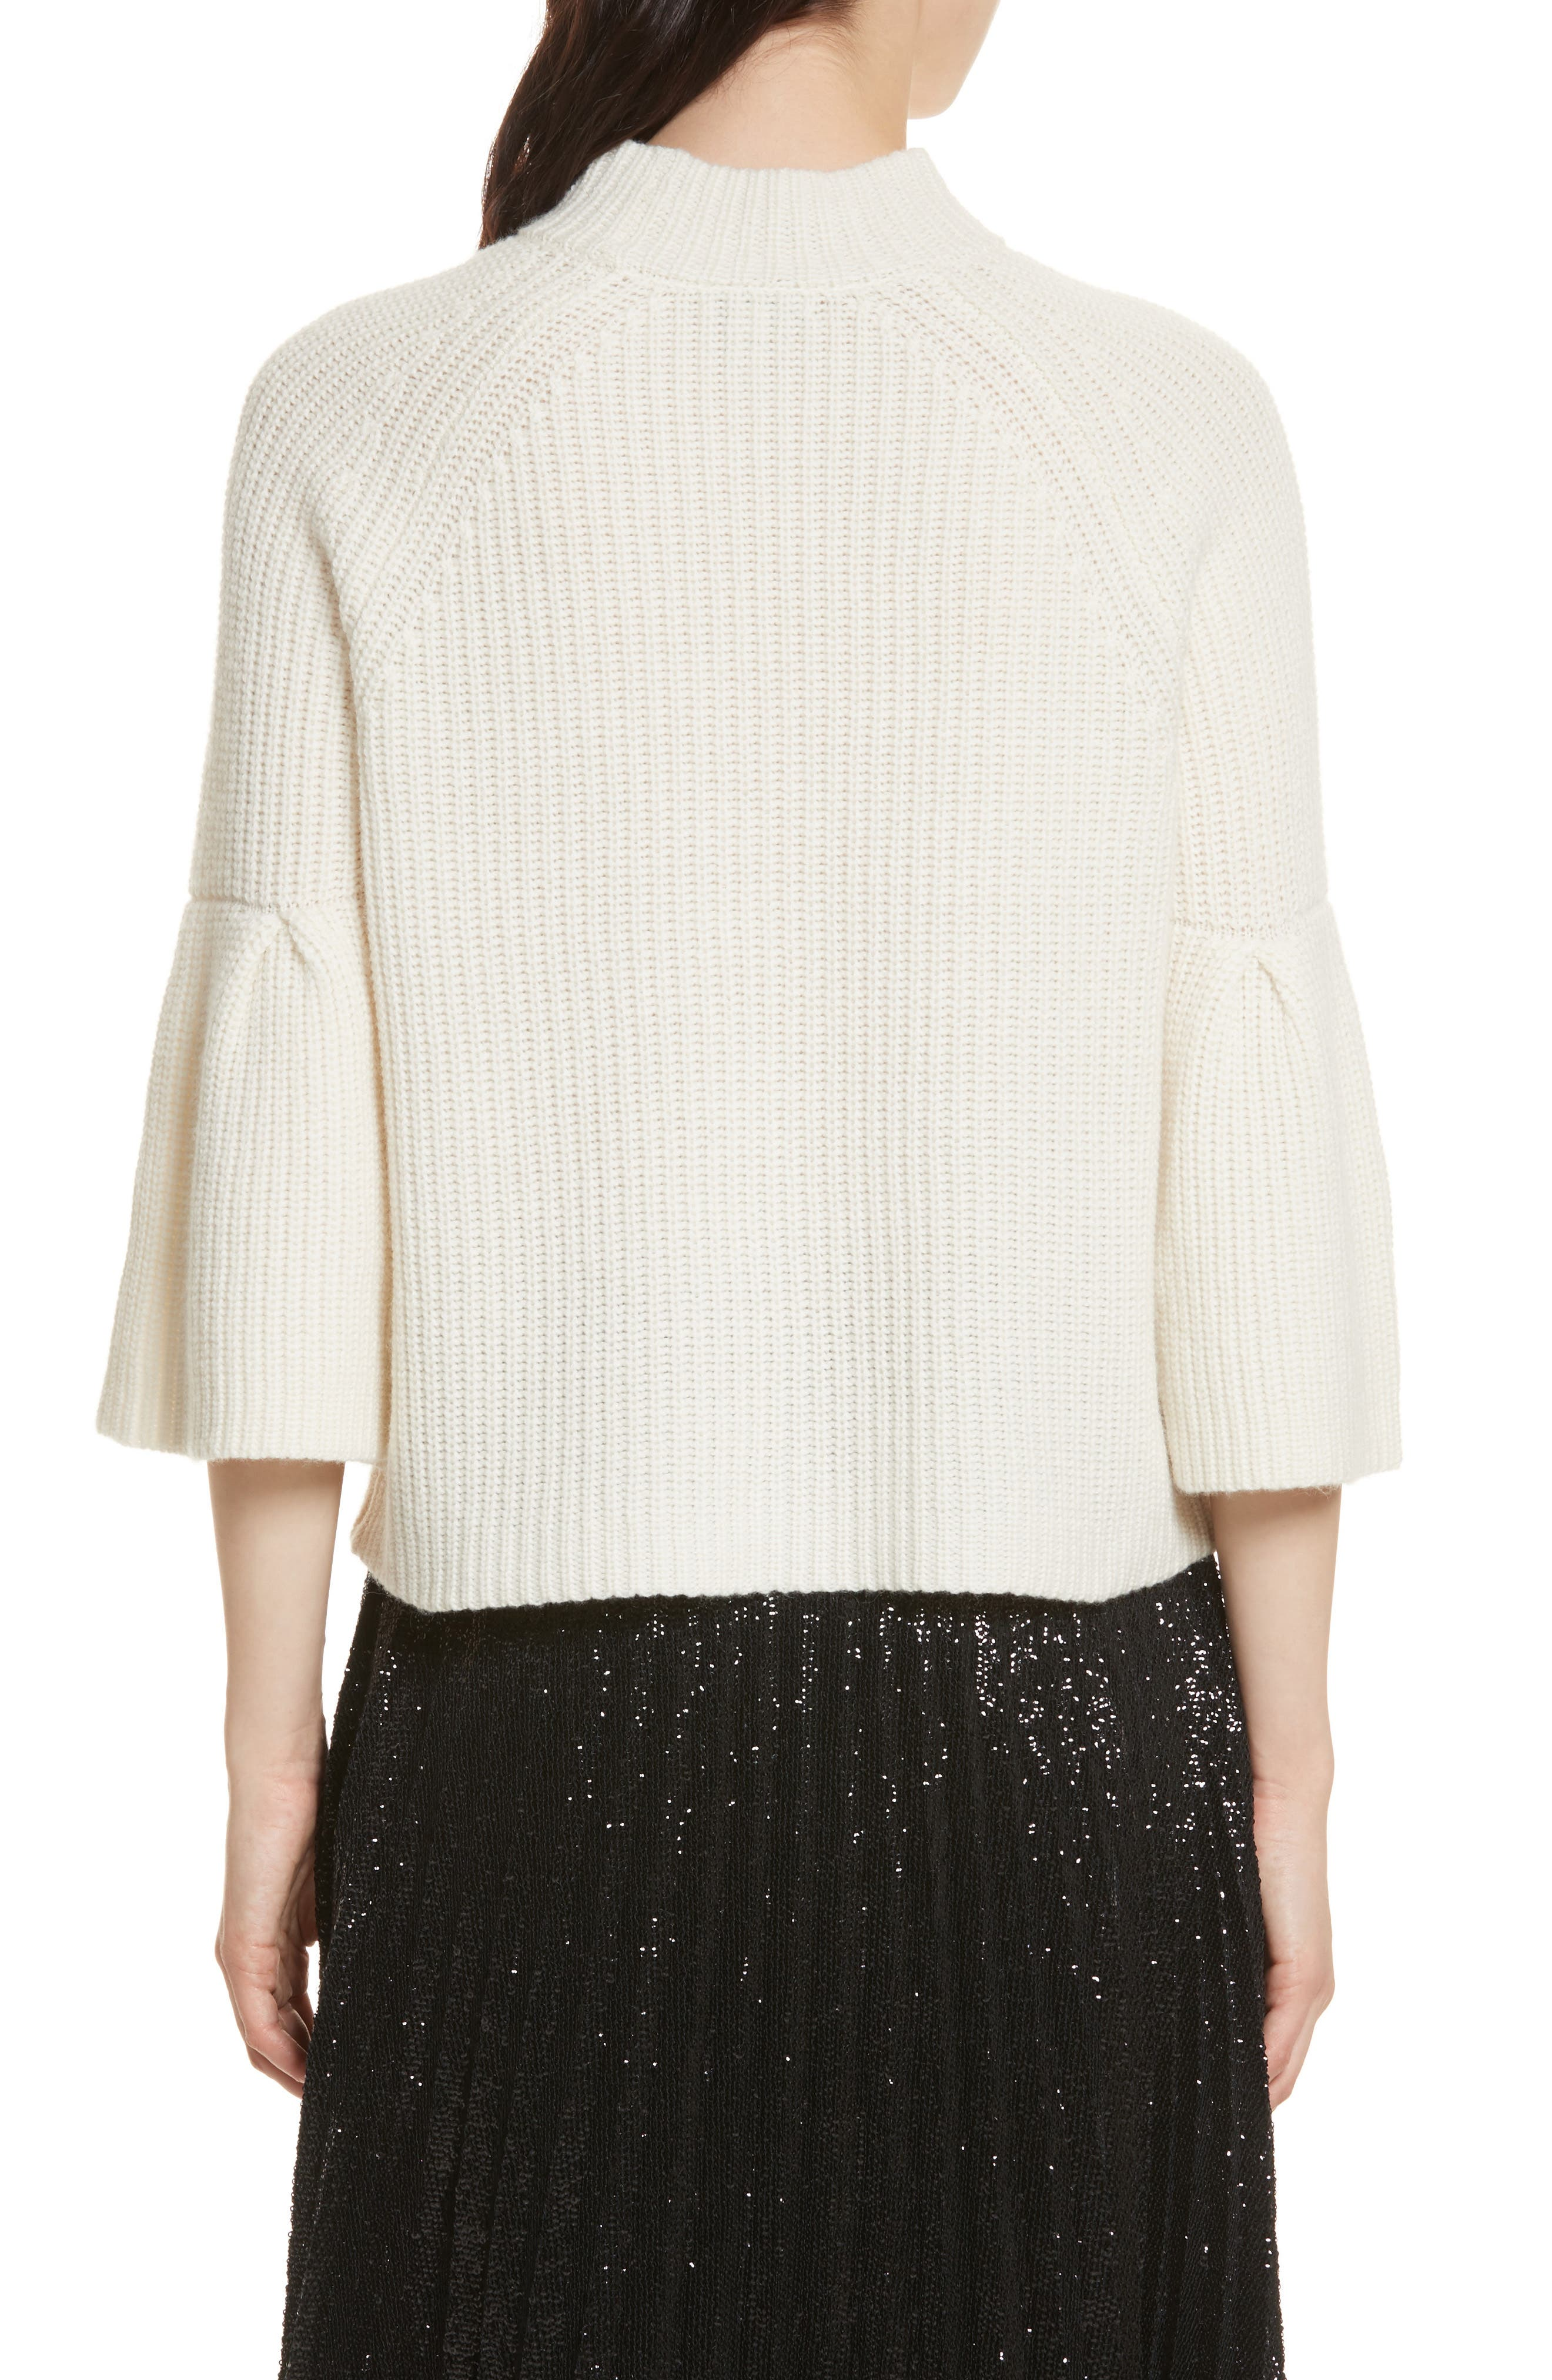 Ingrit Wool & Cashmere Sweater,                             Alternate thumbnail 2, color,                             114